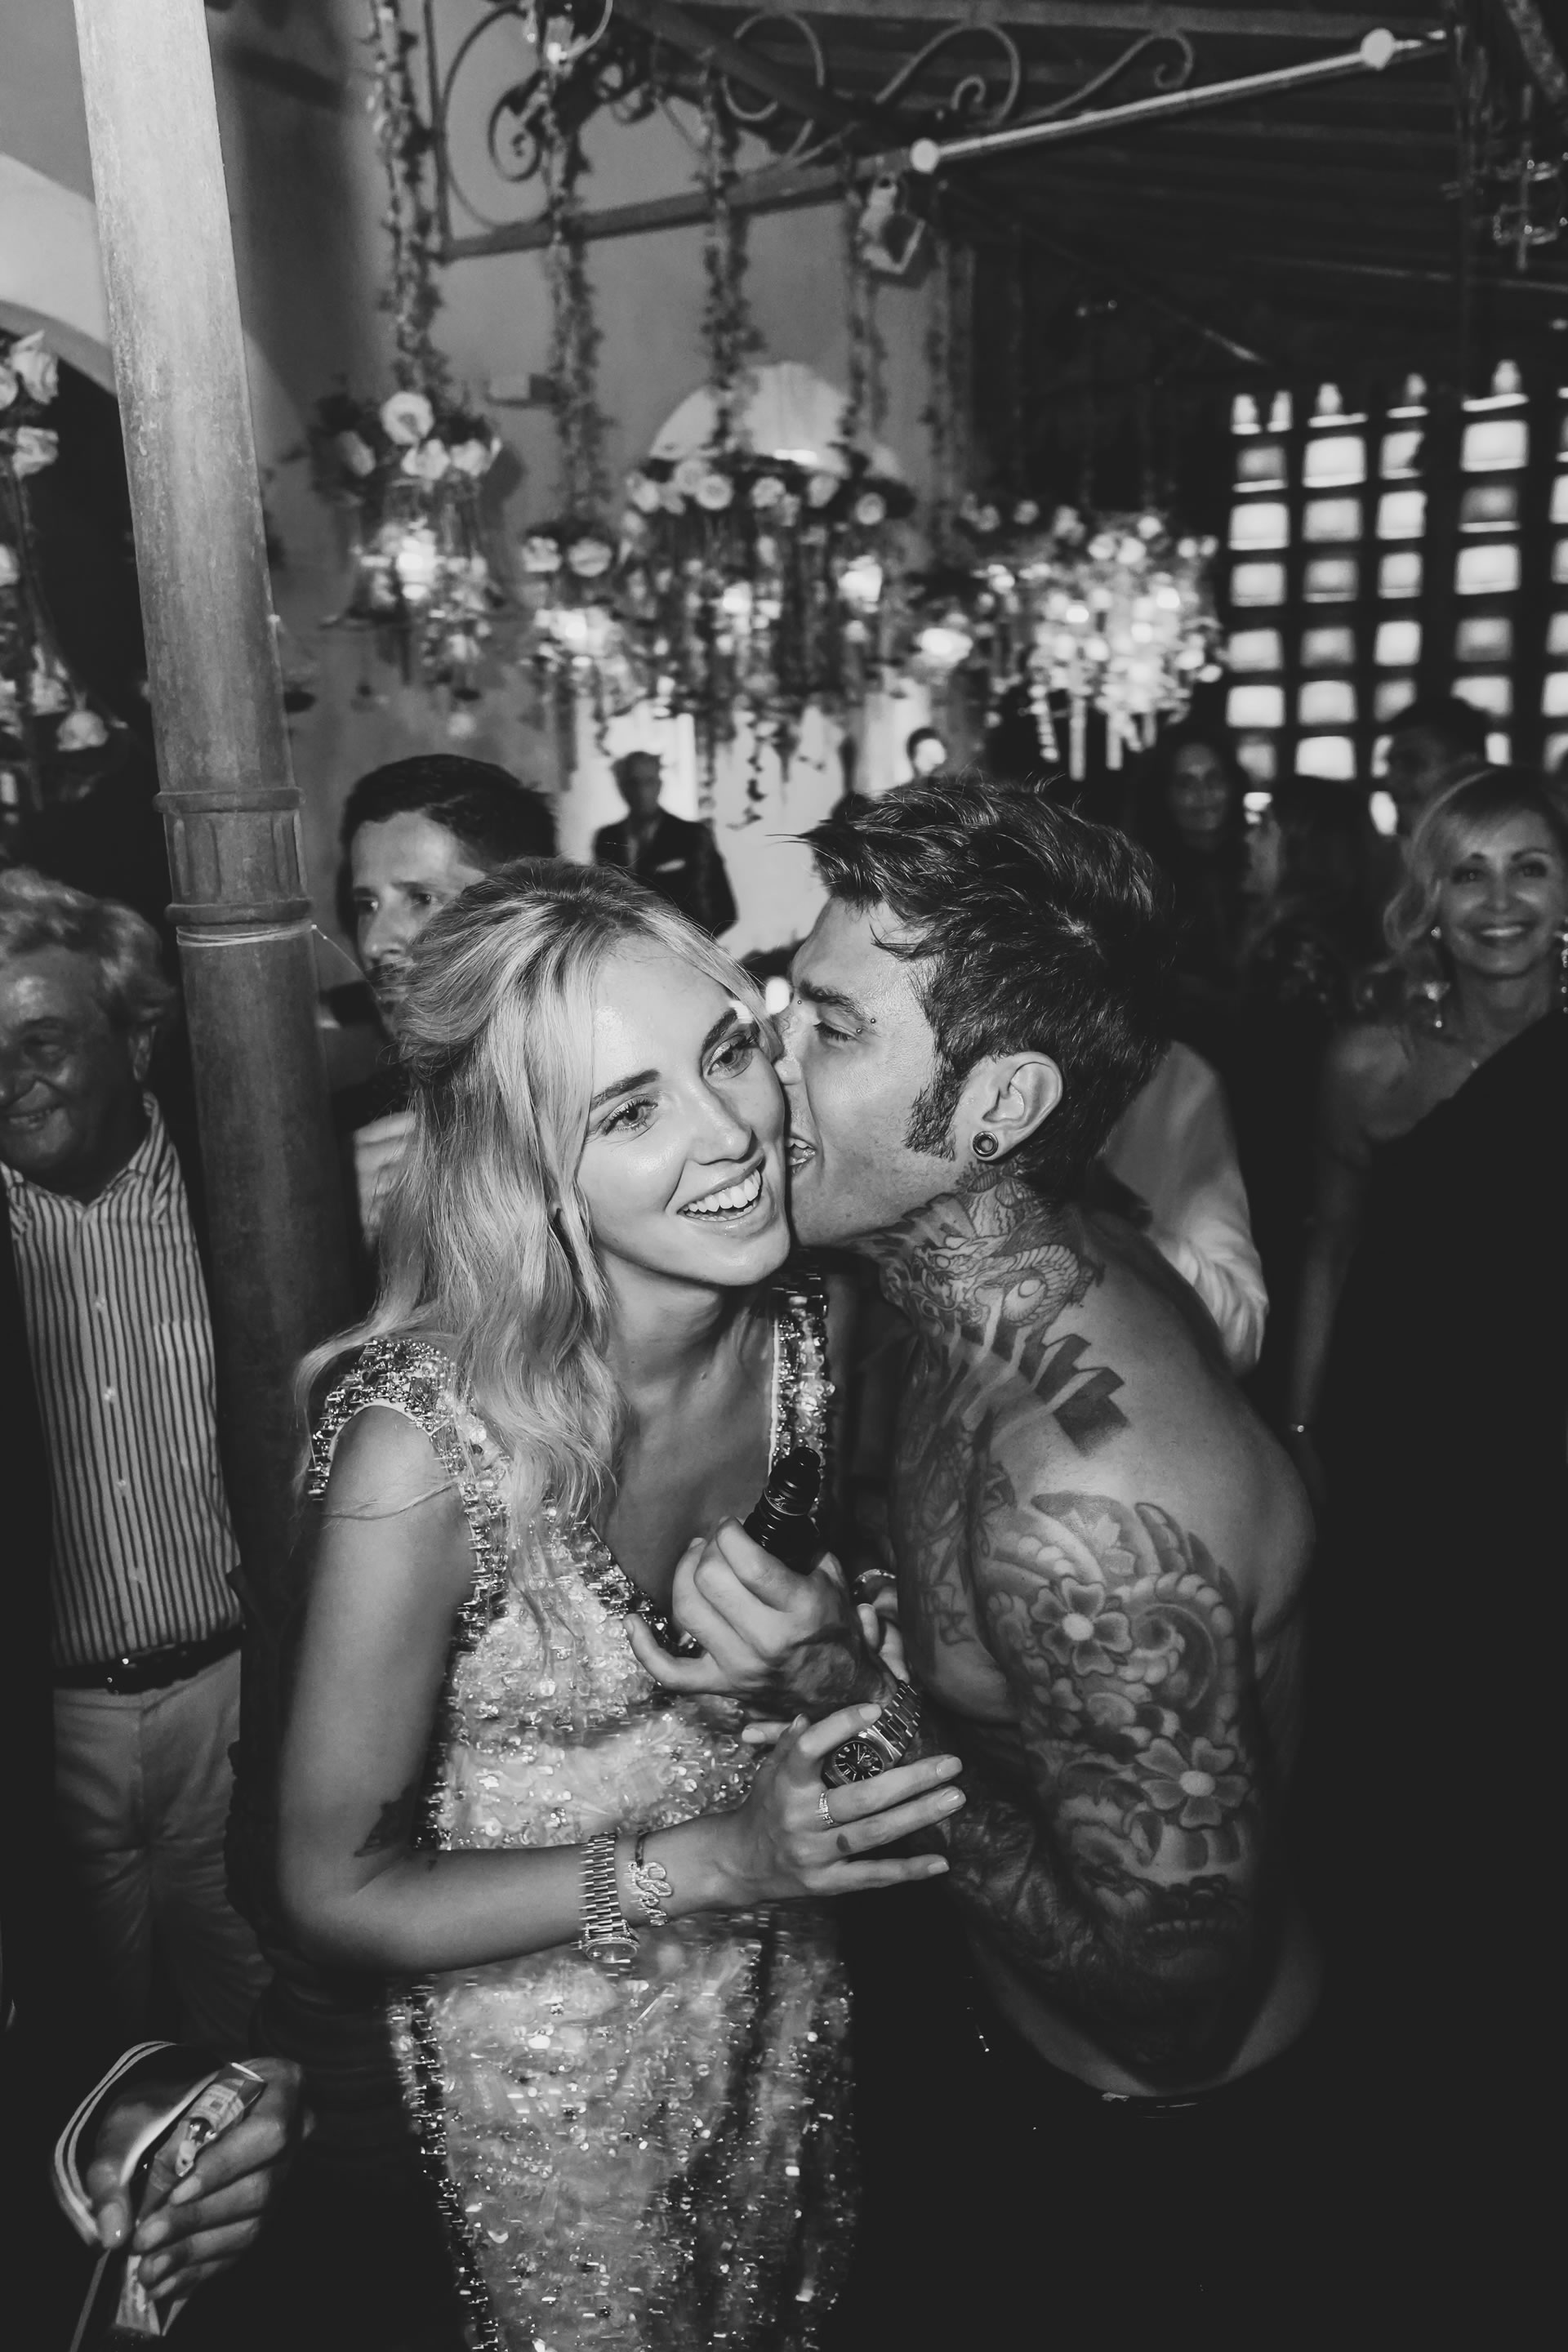 - 1 :: The Ferragnez: Chiara and Fede in 12 shots :: Luxury wedding photography - 0 ::  - 1